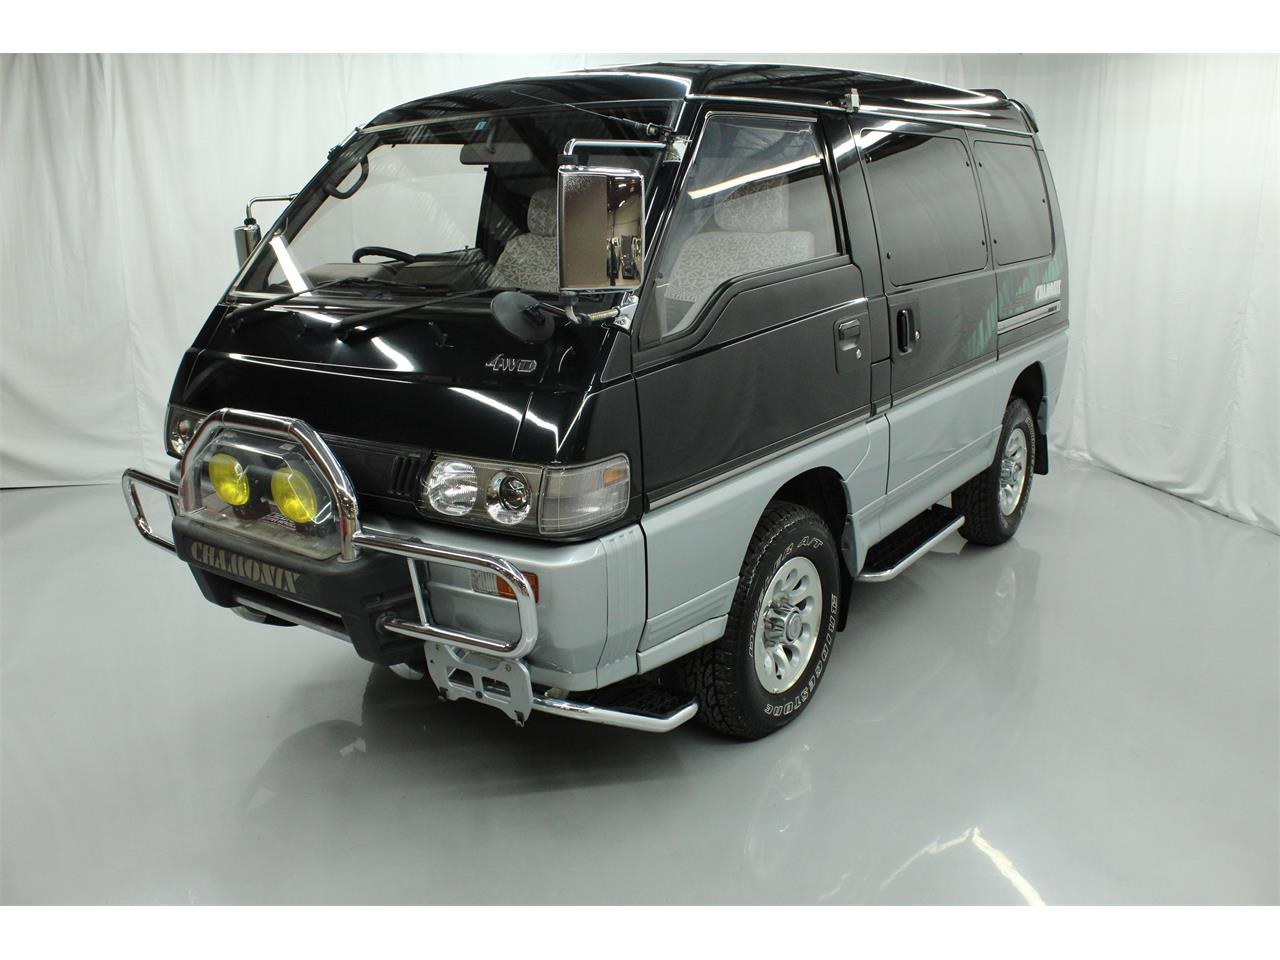 1992 Mitsubishi Delica for sale in Christiansburg, VA – photo 5